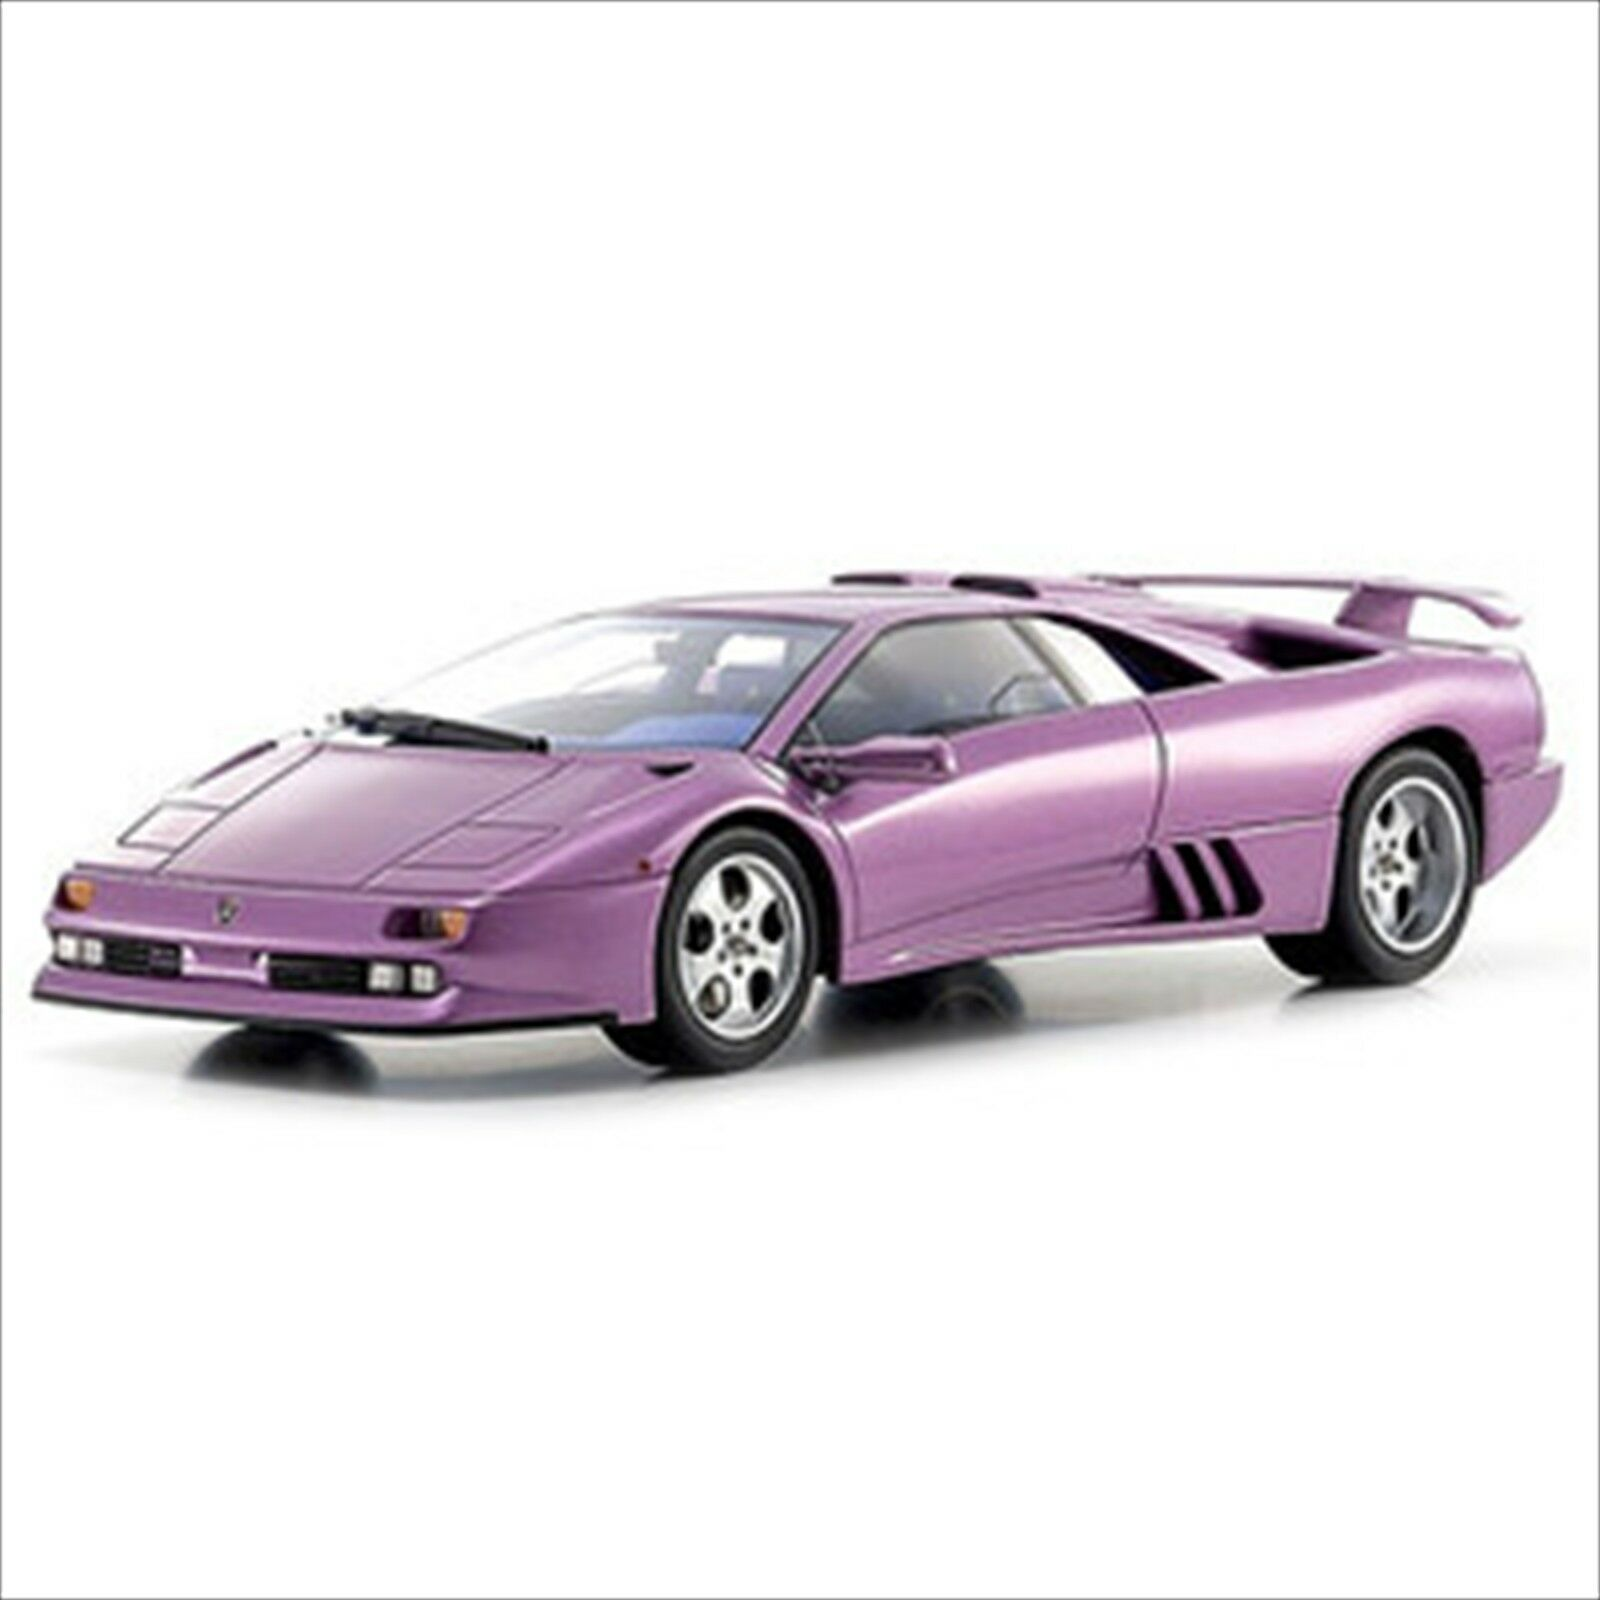 Kyosho Original 1 18 Lamborghini Diablo SE 30 Jota purple resin KSR18501V NEW